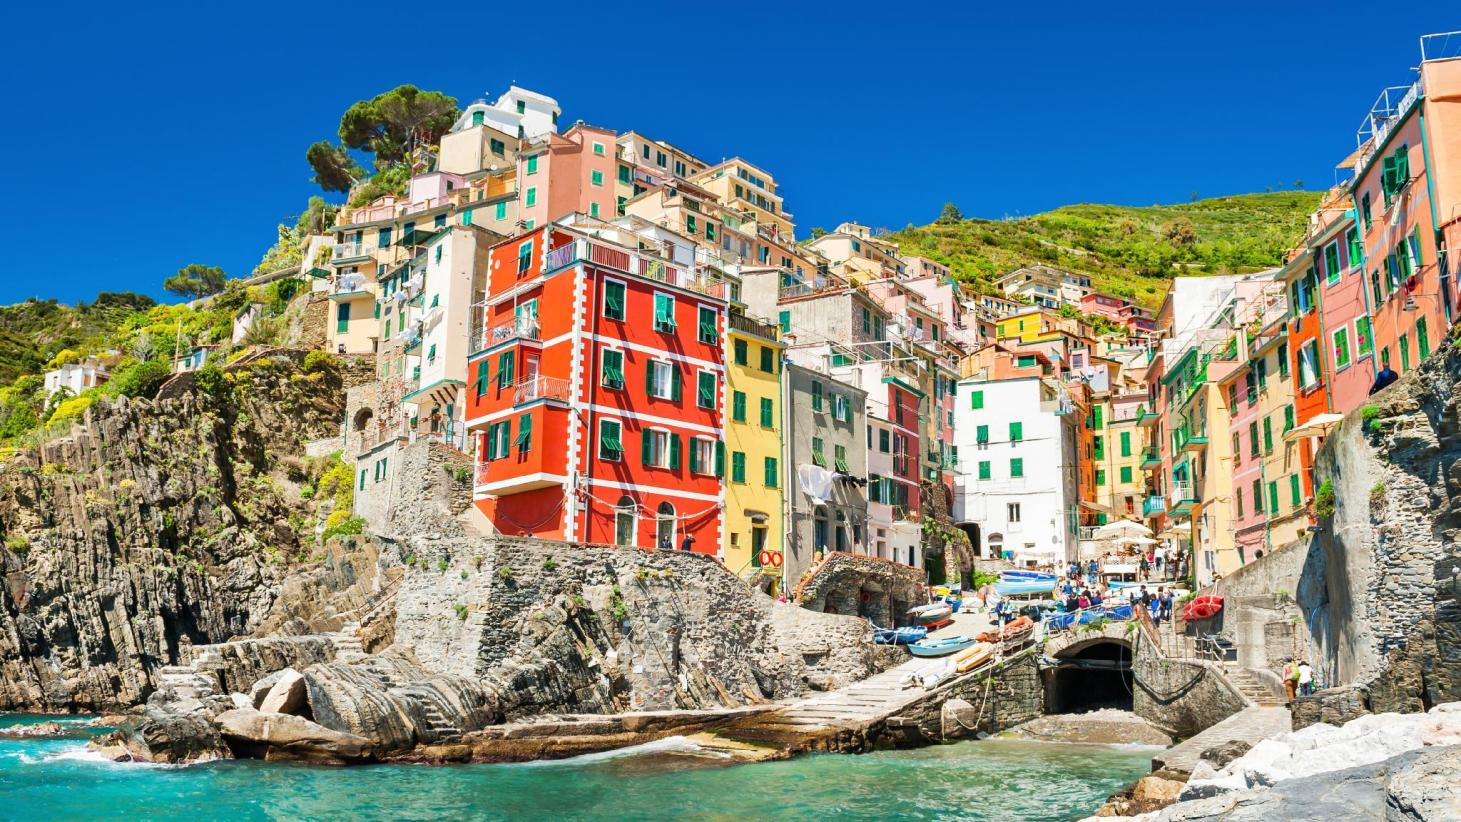 Riomaggiore Apartments - Best Price + HD Photos of Apartments in ...